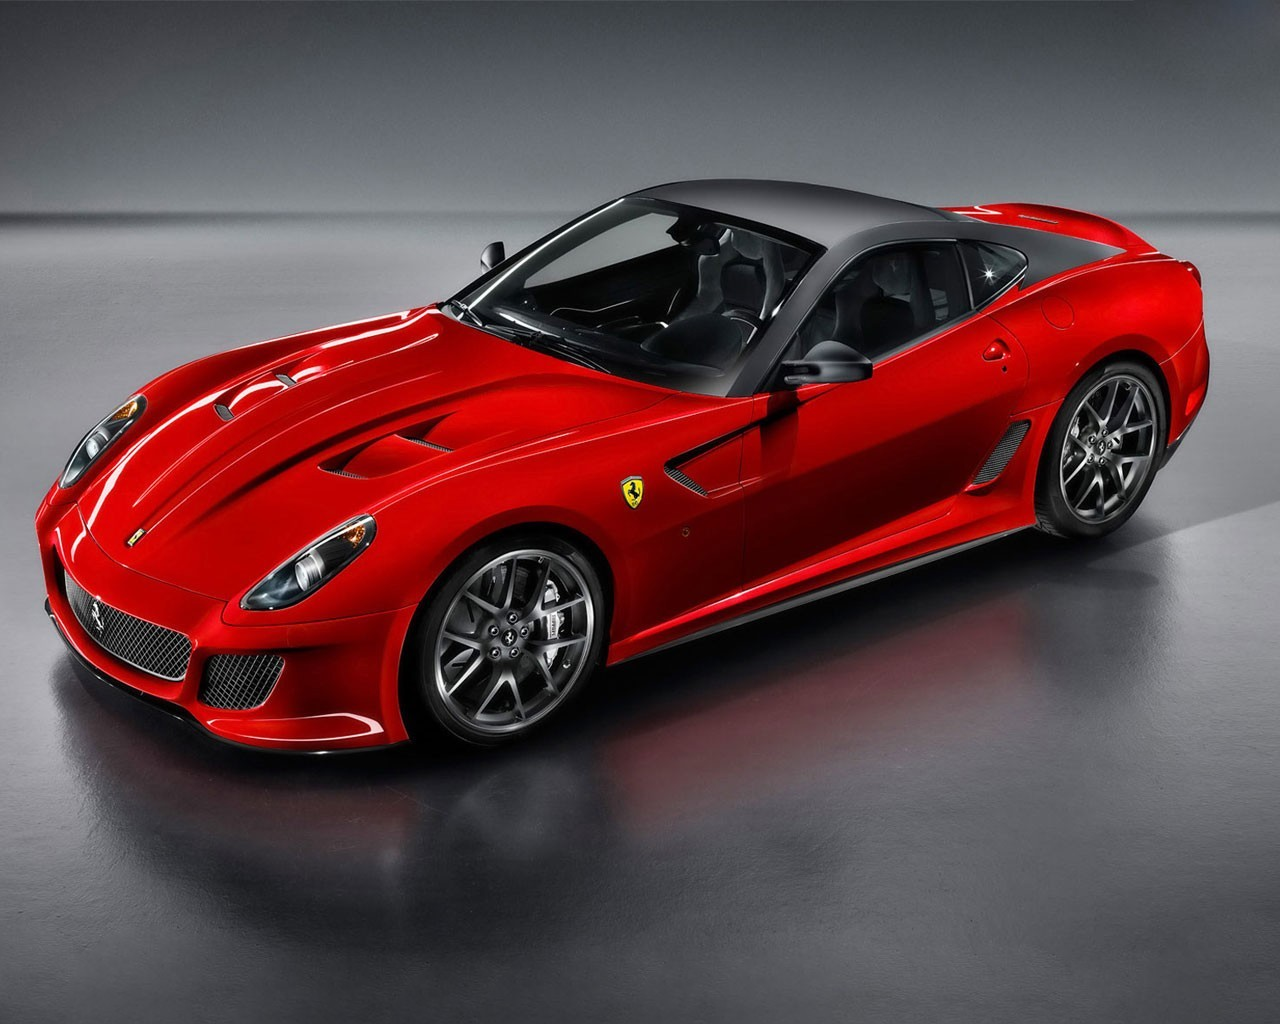 cars Ferrari vehicles Supercars HD Wallpaper